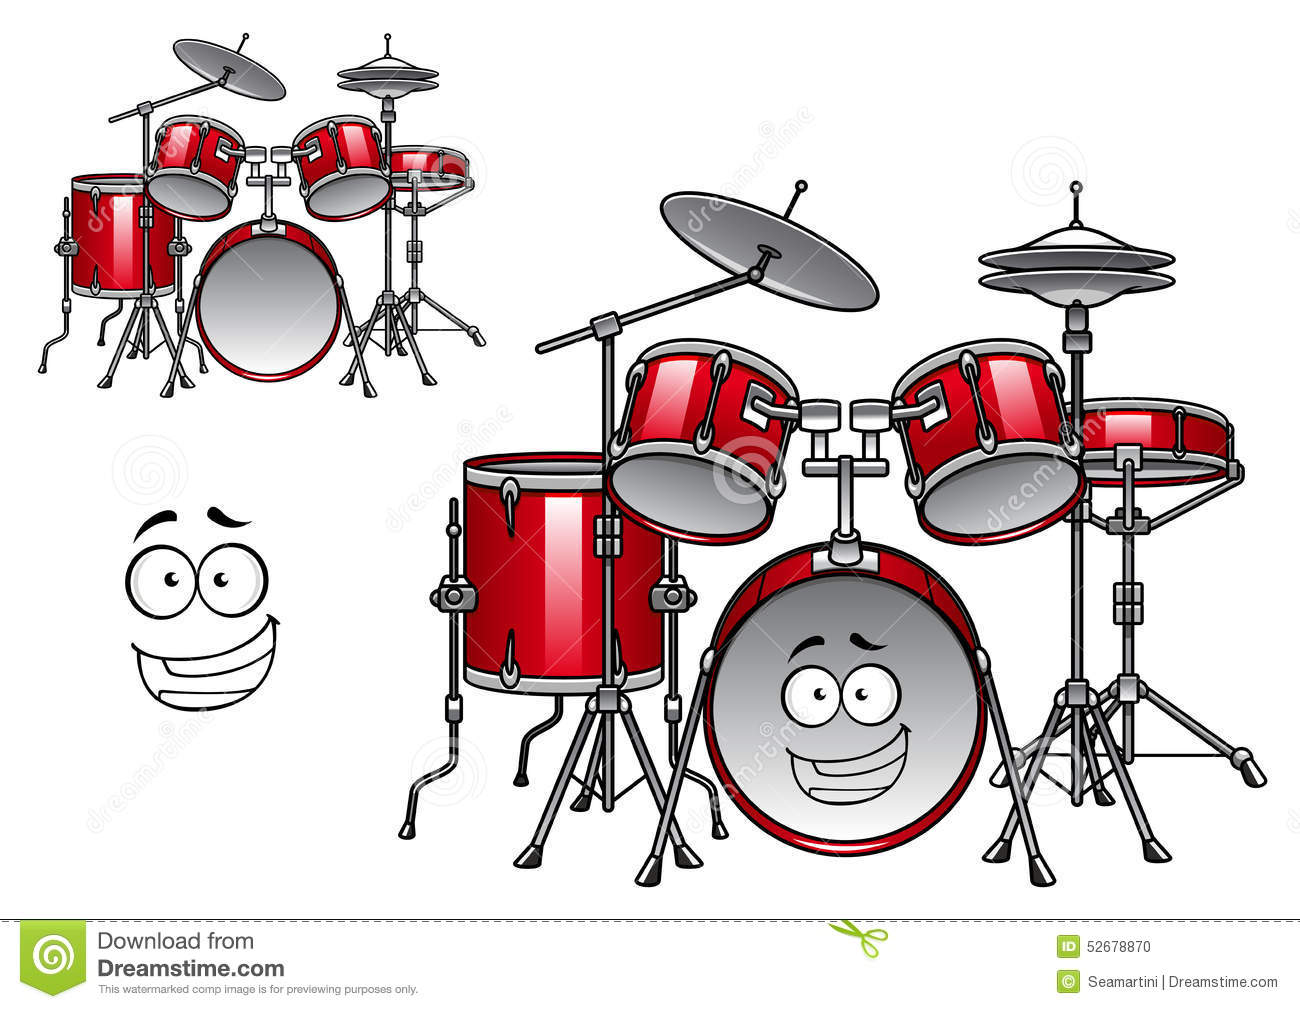 Red Drum Kit Cartoon Character Stock Vector - Illustration of bass ...